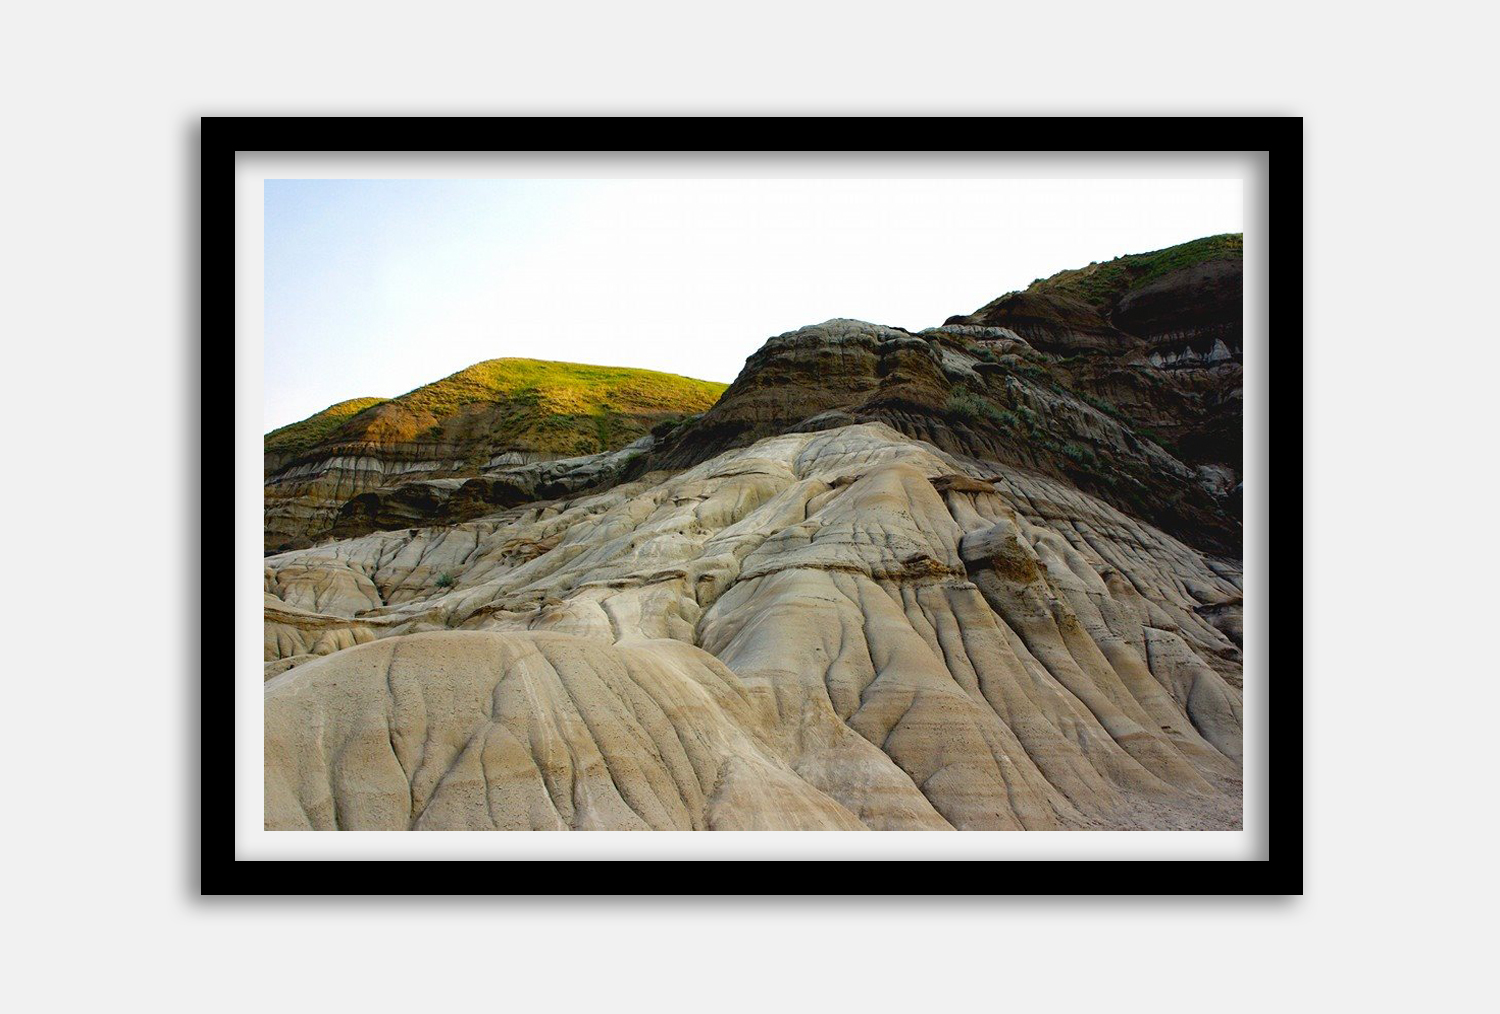 daxjustin-prints-SeriesBadlands-no1